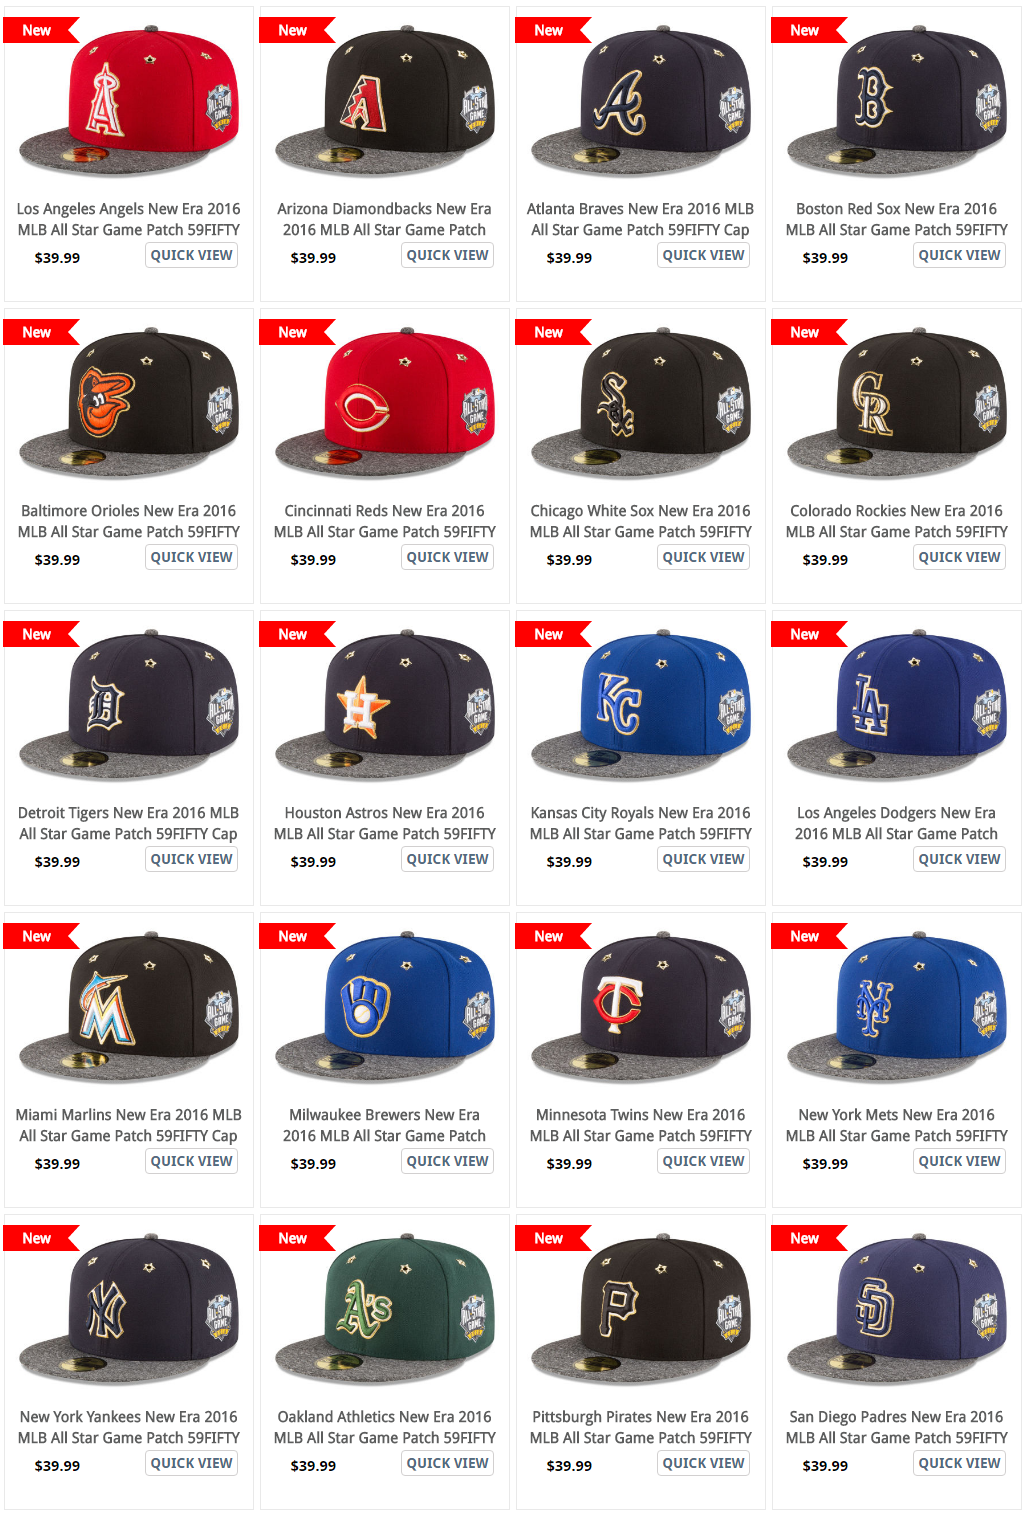 2016 MLB All Star Game Hat with Free Shipping discount code 266a99ad63c